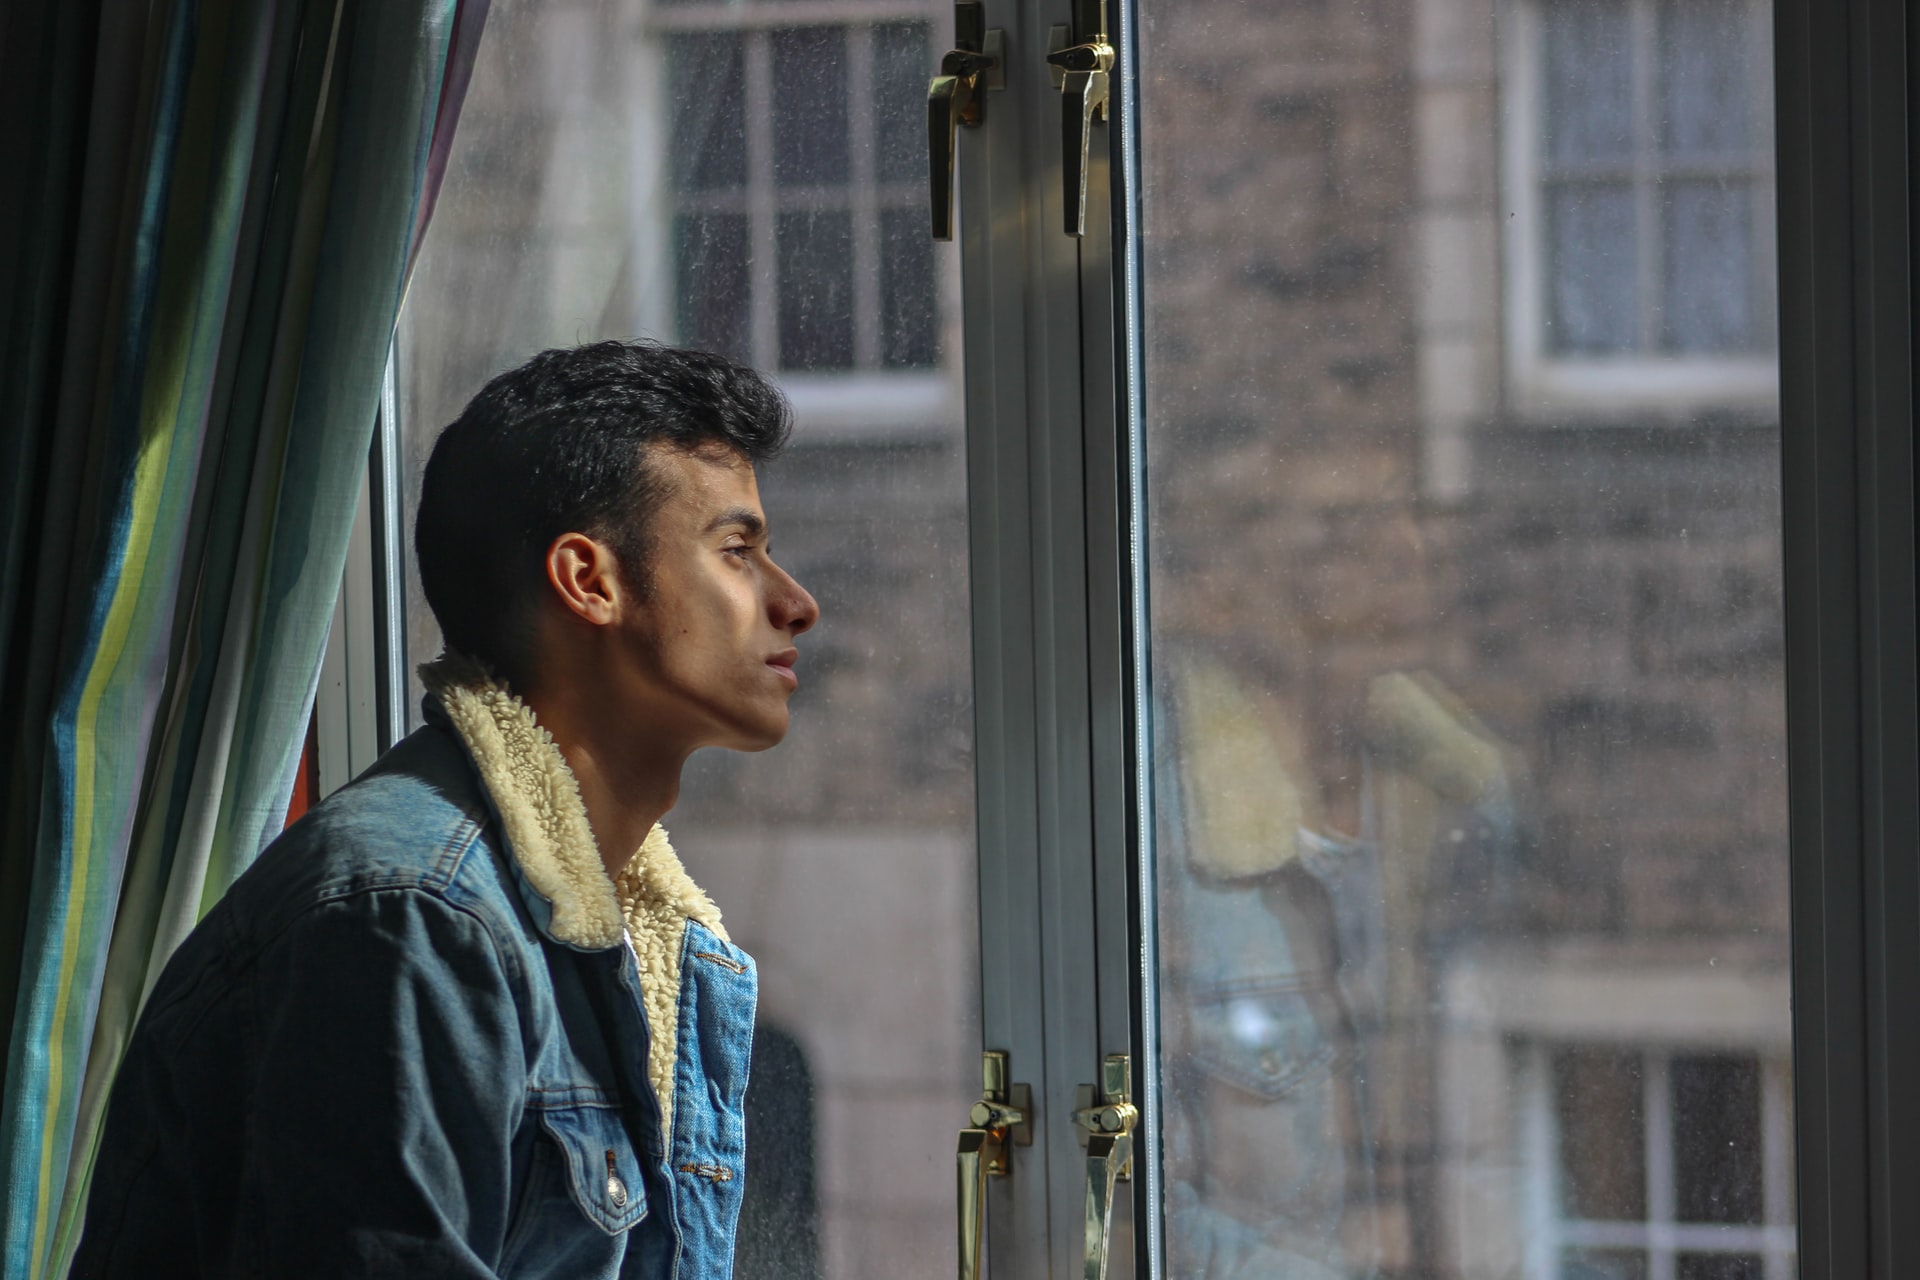 young man looking out of a window